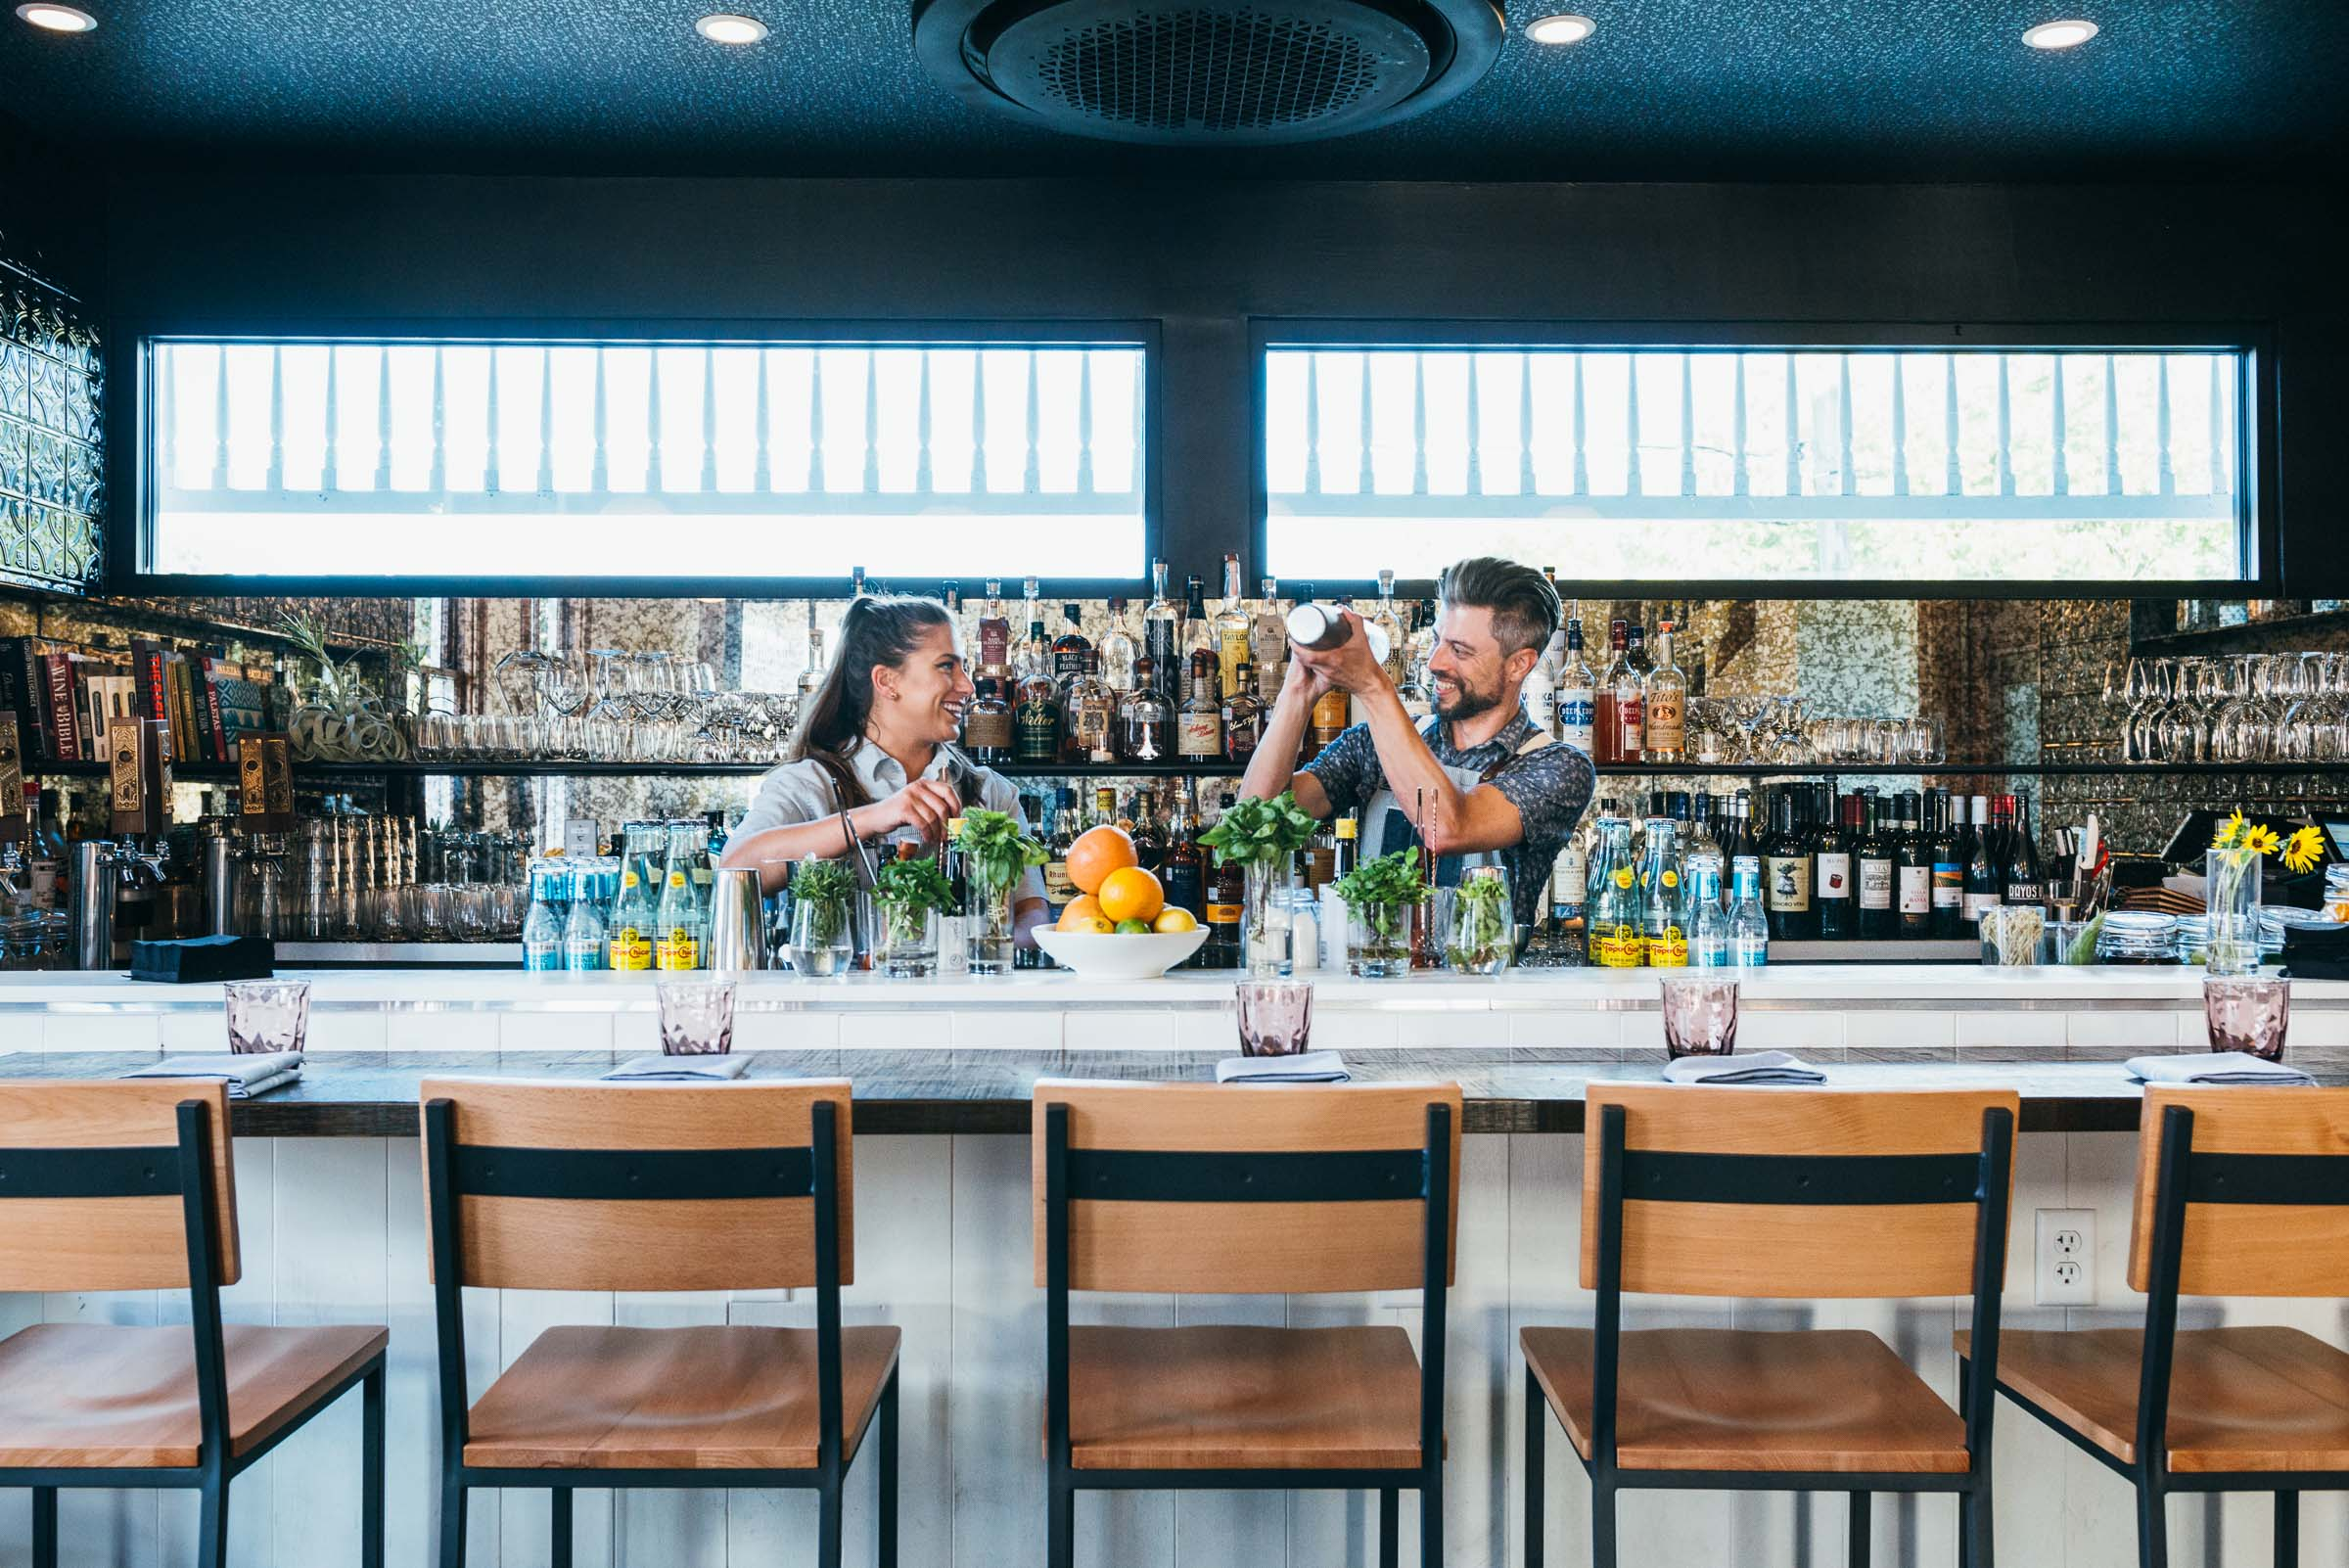 Bartenders- in interesting architectural space - Rosewood Restaurant Austin TX